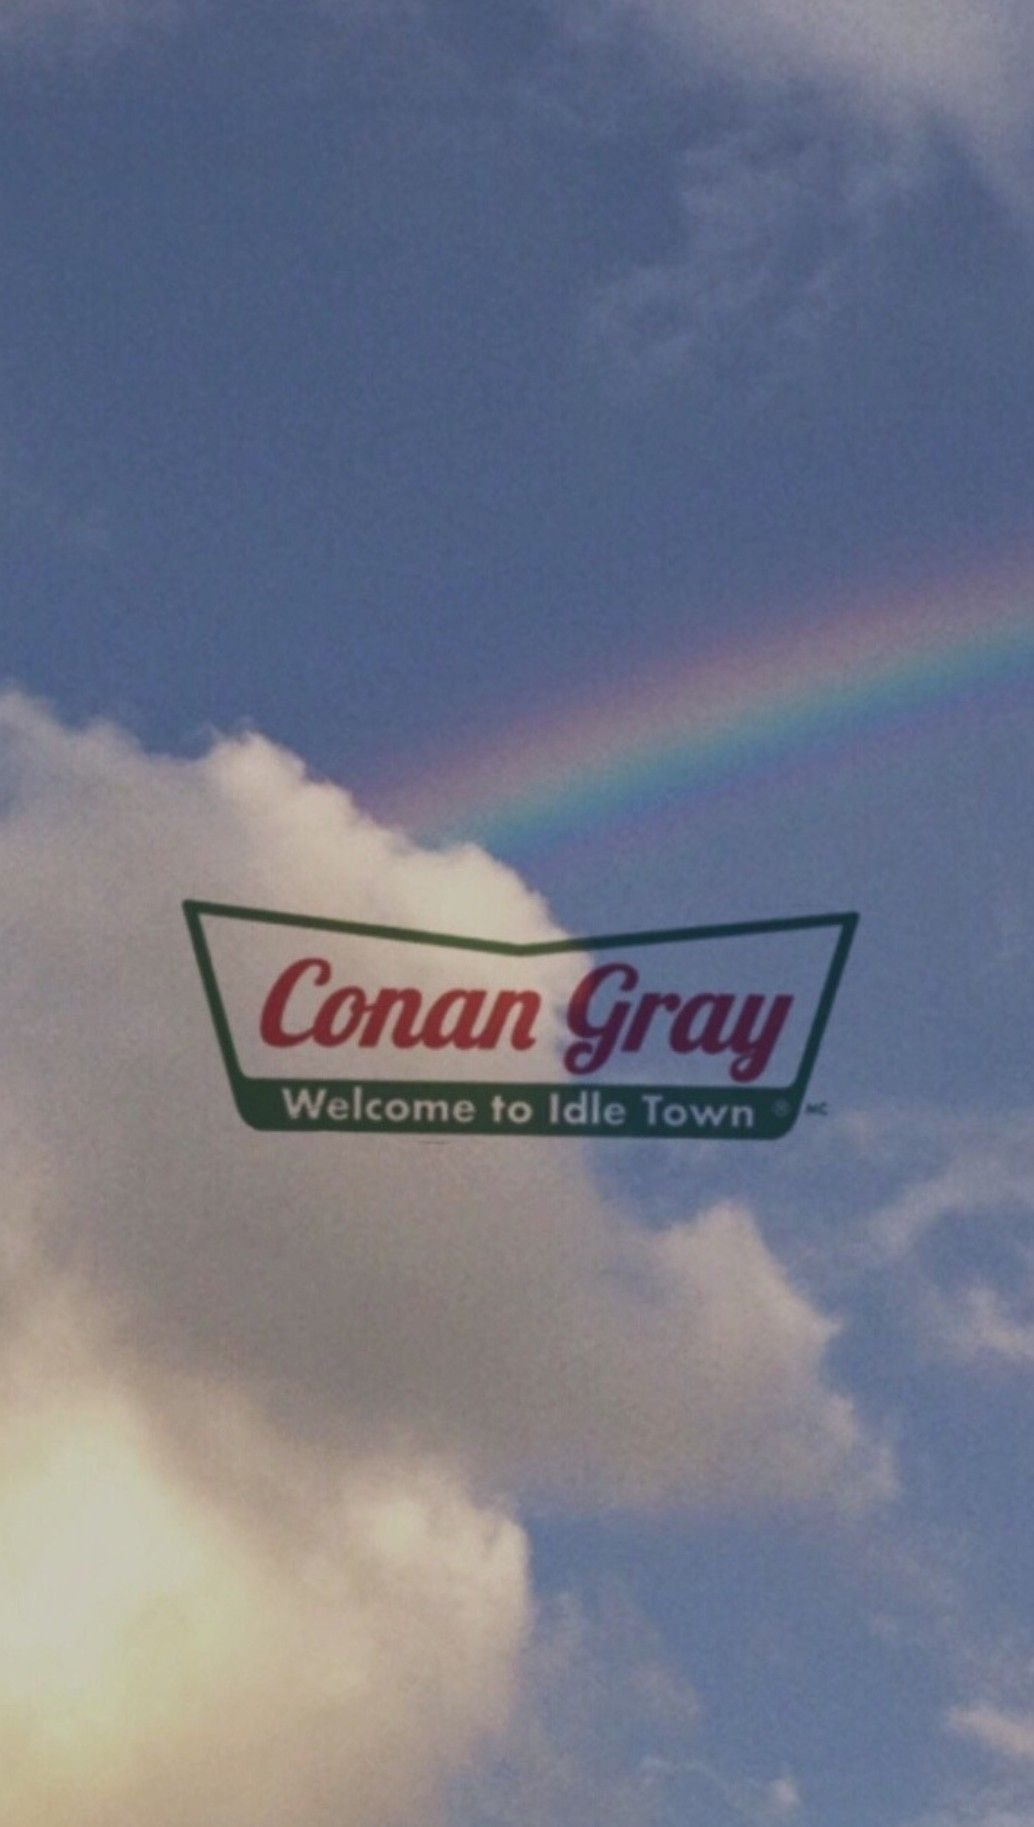 Pin by TaylorBaguette on wallpapers Conan gray aesthetic